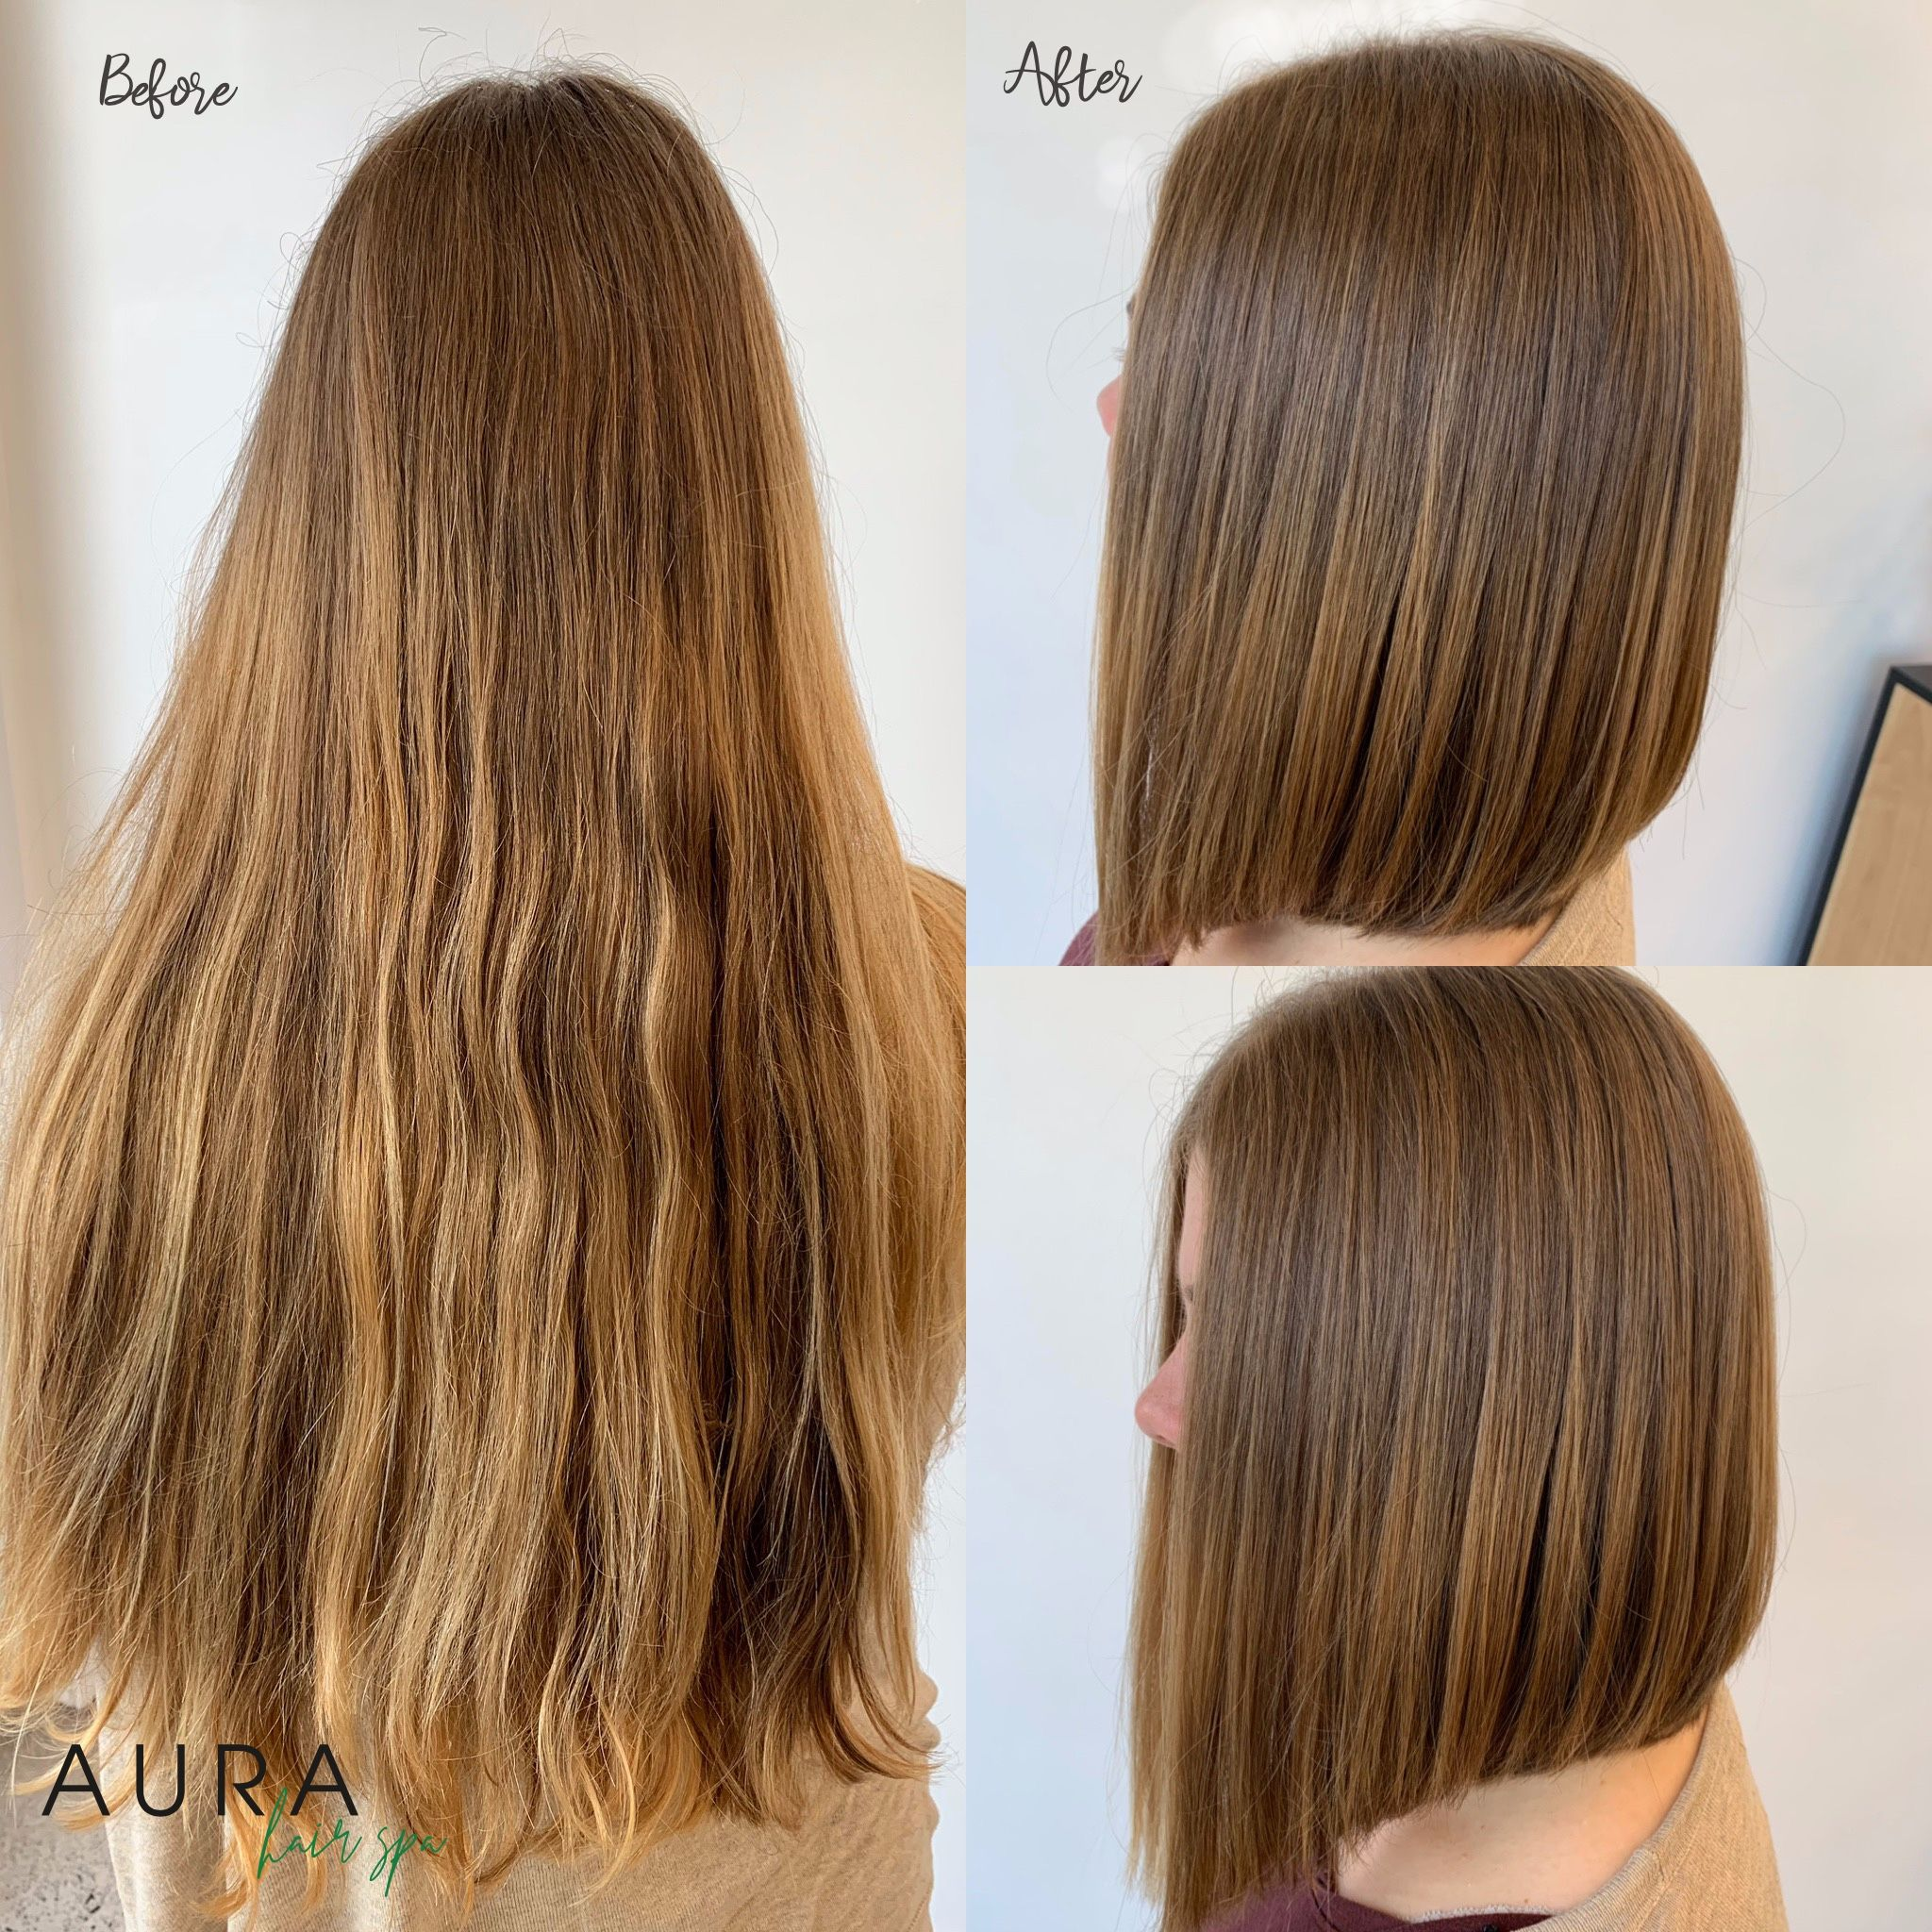 Long To Lob Makeover In 2020 Long Hair Styles Beautiful Hair Hairstyle